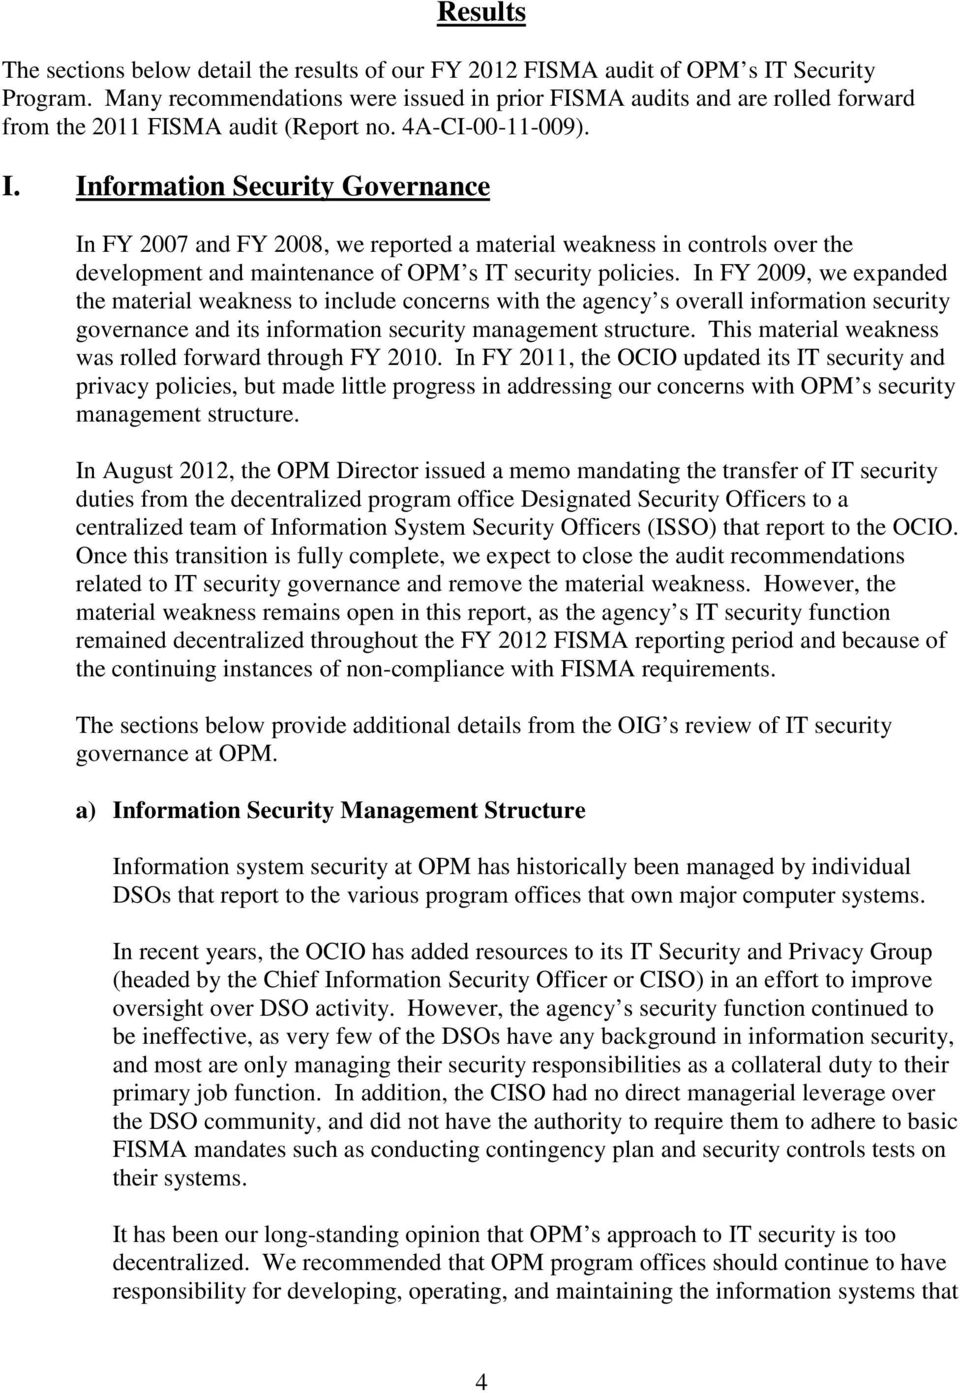 Information Security Governance In FY 2007 and FY 2008, we reported a material weakness in controls over the development and maintenance of OPM s IT security policies.